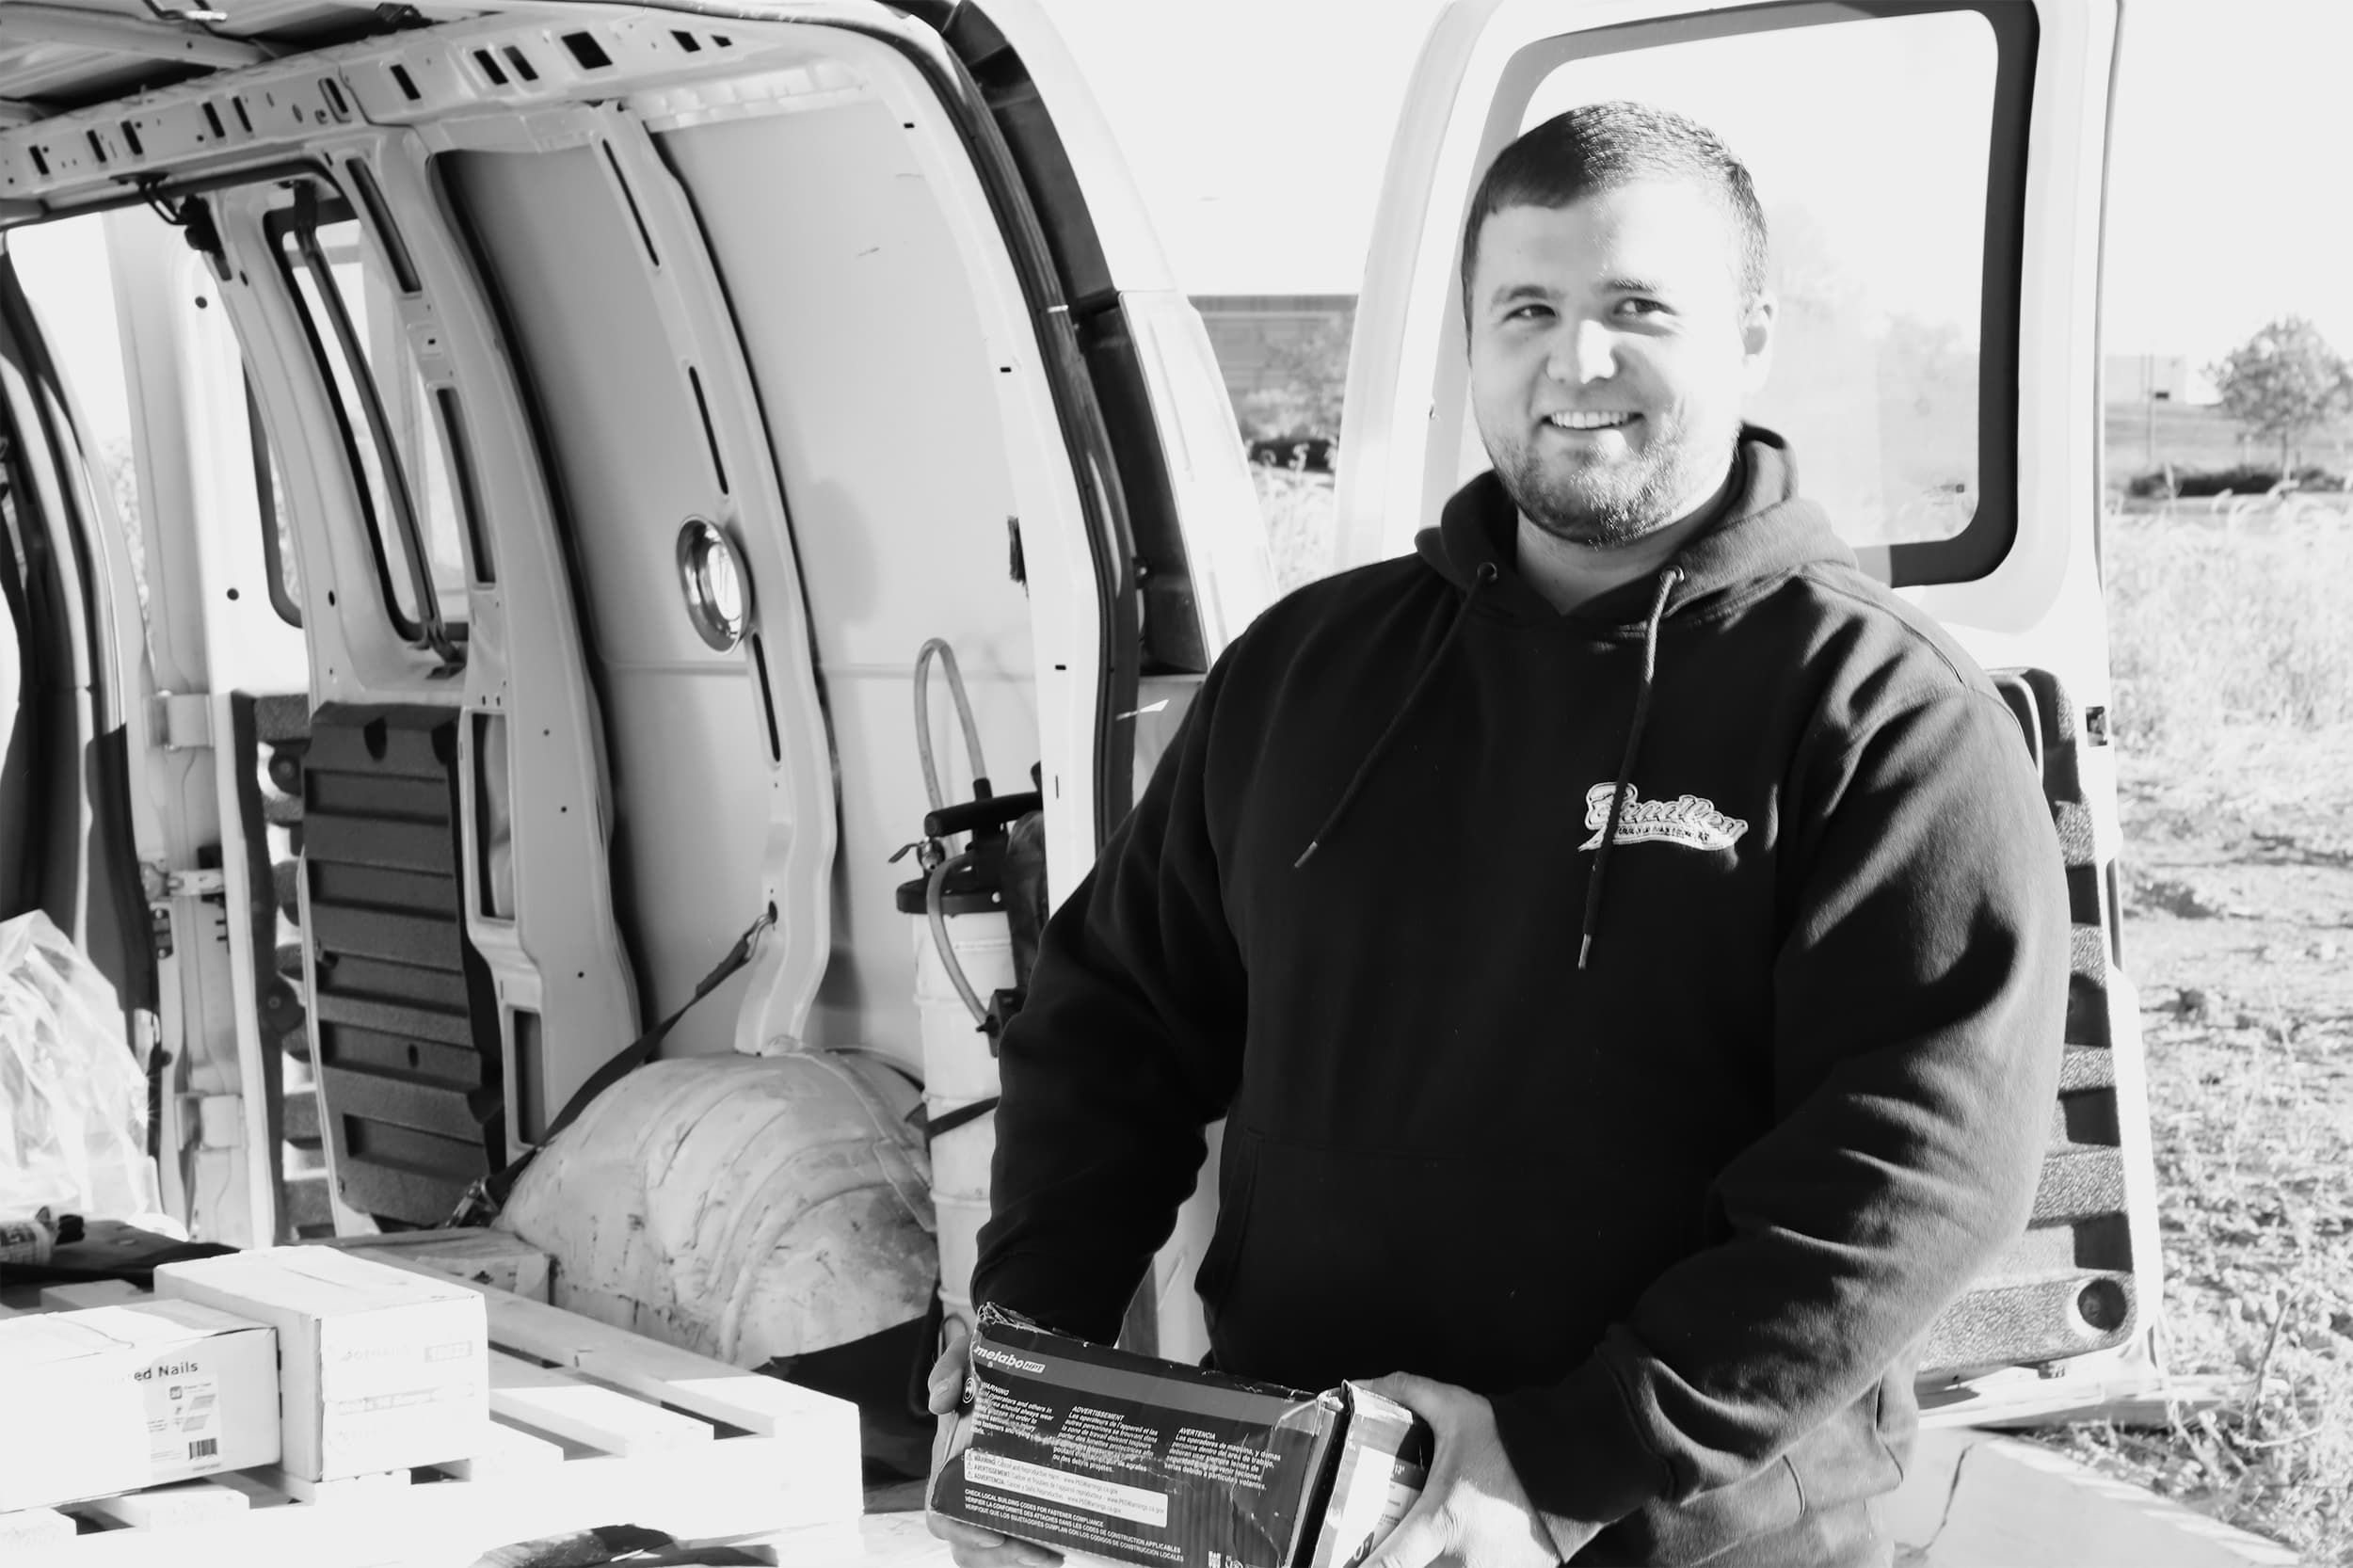 Bradley Tools employee making a tool delivery